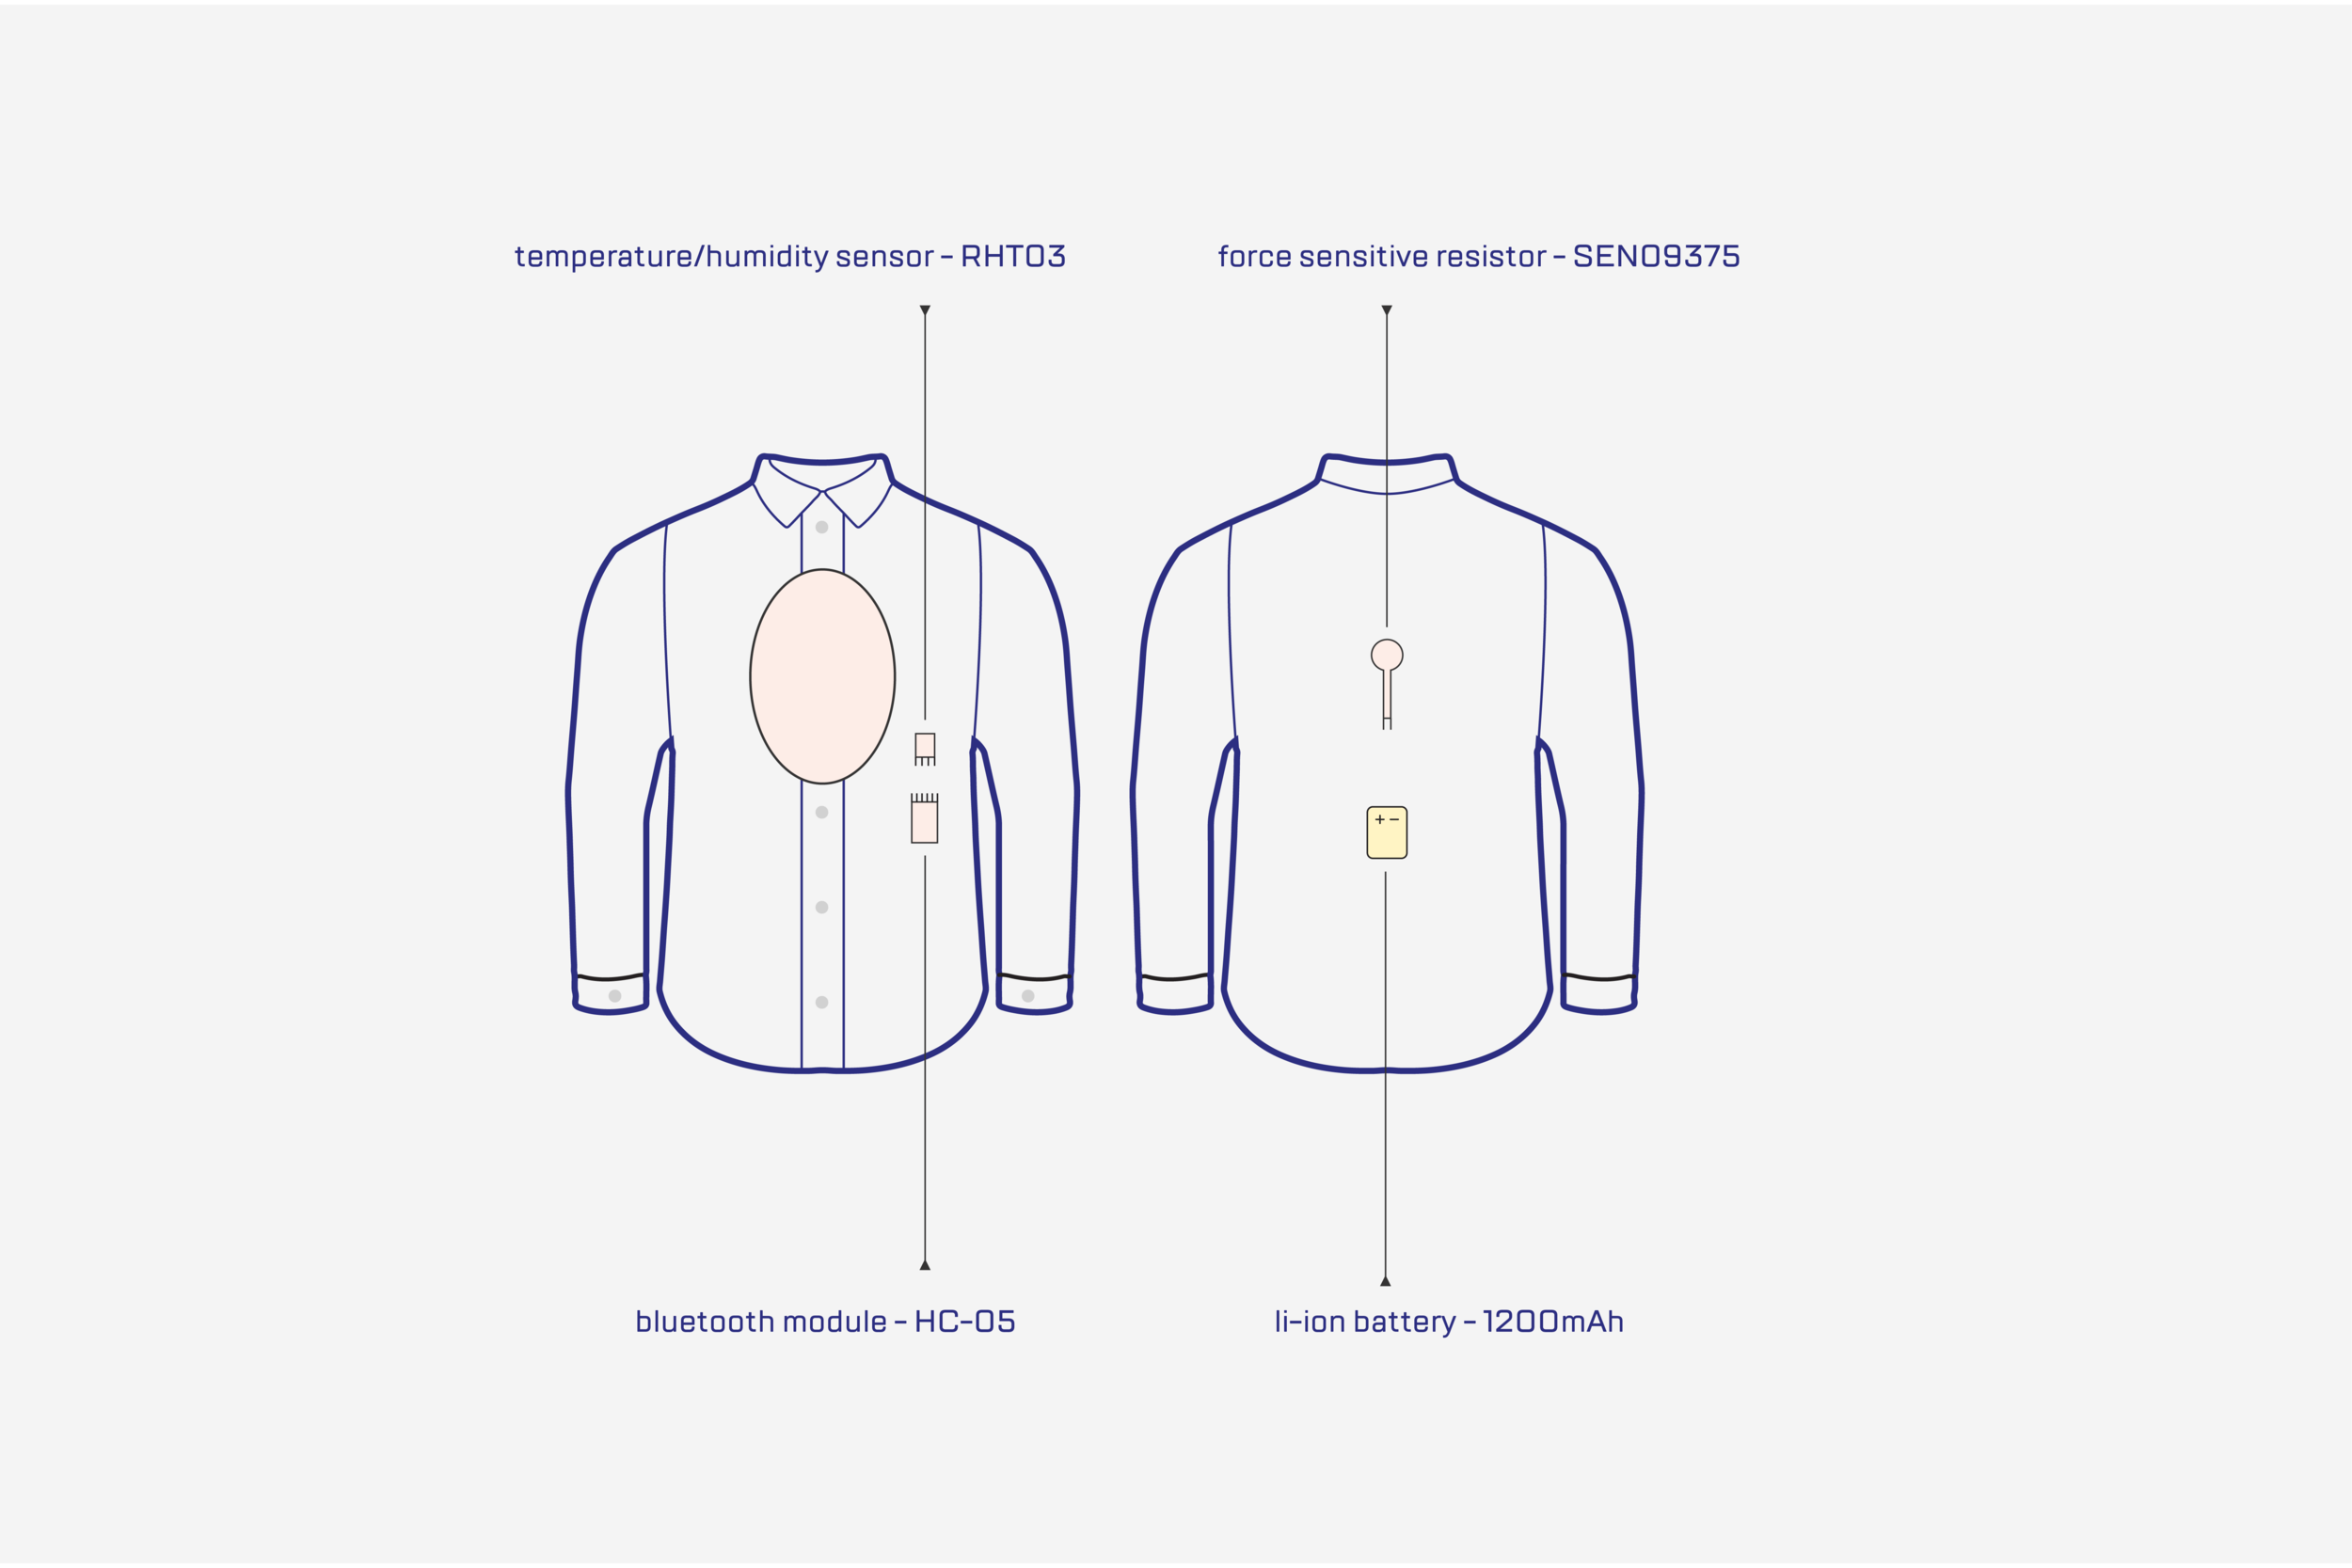 the shirt detects the wearer's motion and body changes during an interview and communicates with the jacket in real time